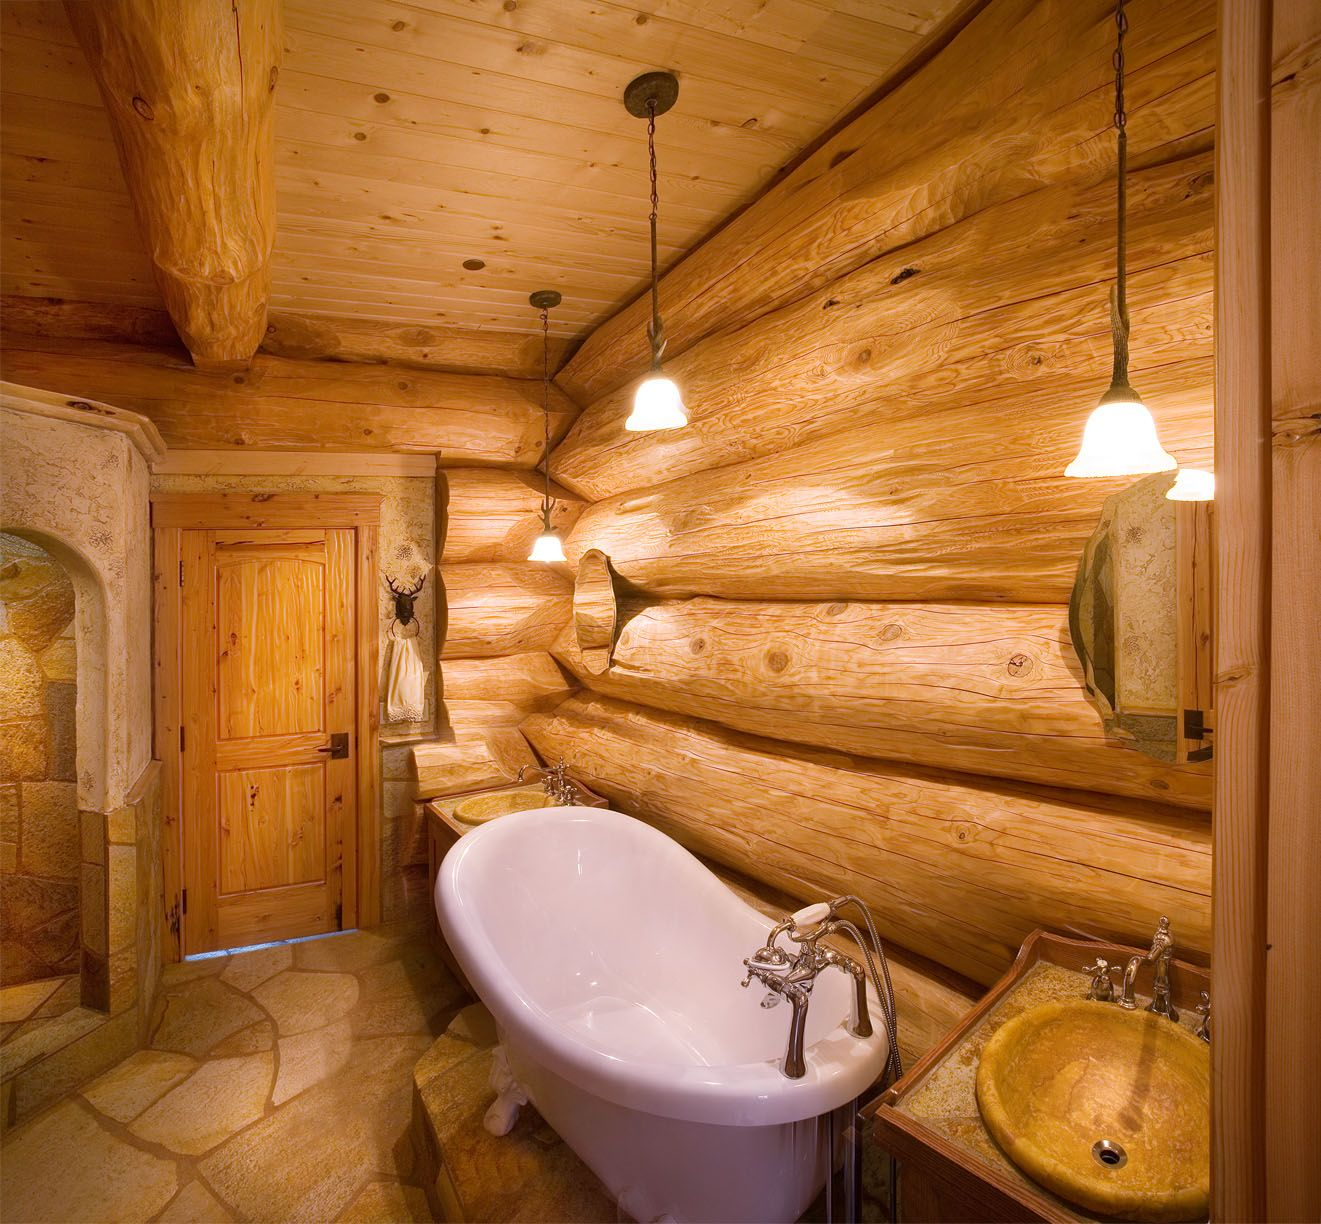 Master bedroom with jacuzzi tub  A Handcrafted EnergyEfficient Log Home in California  Tubs Bath